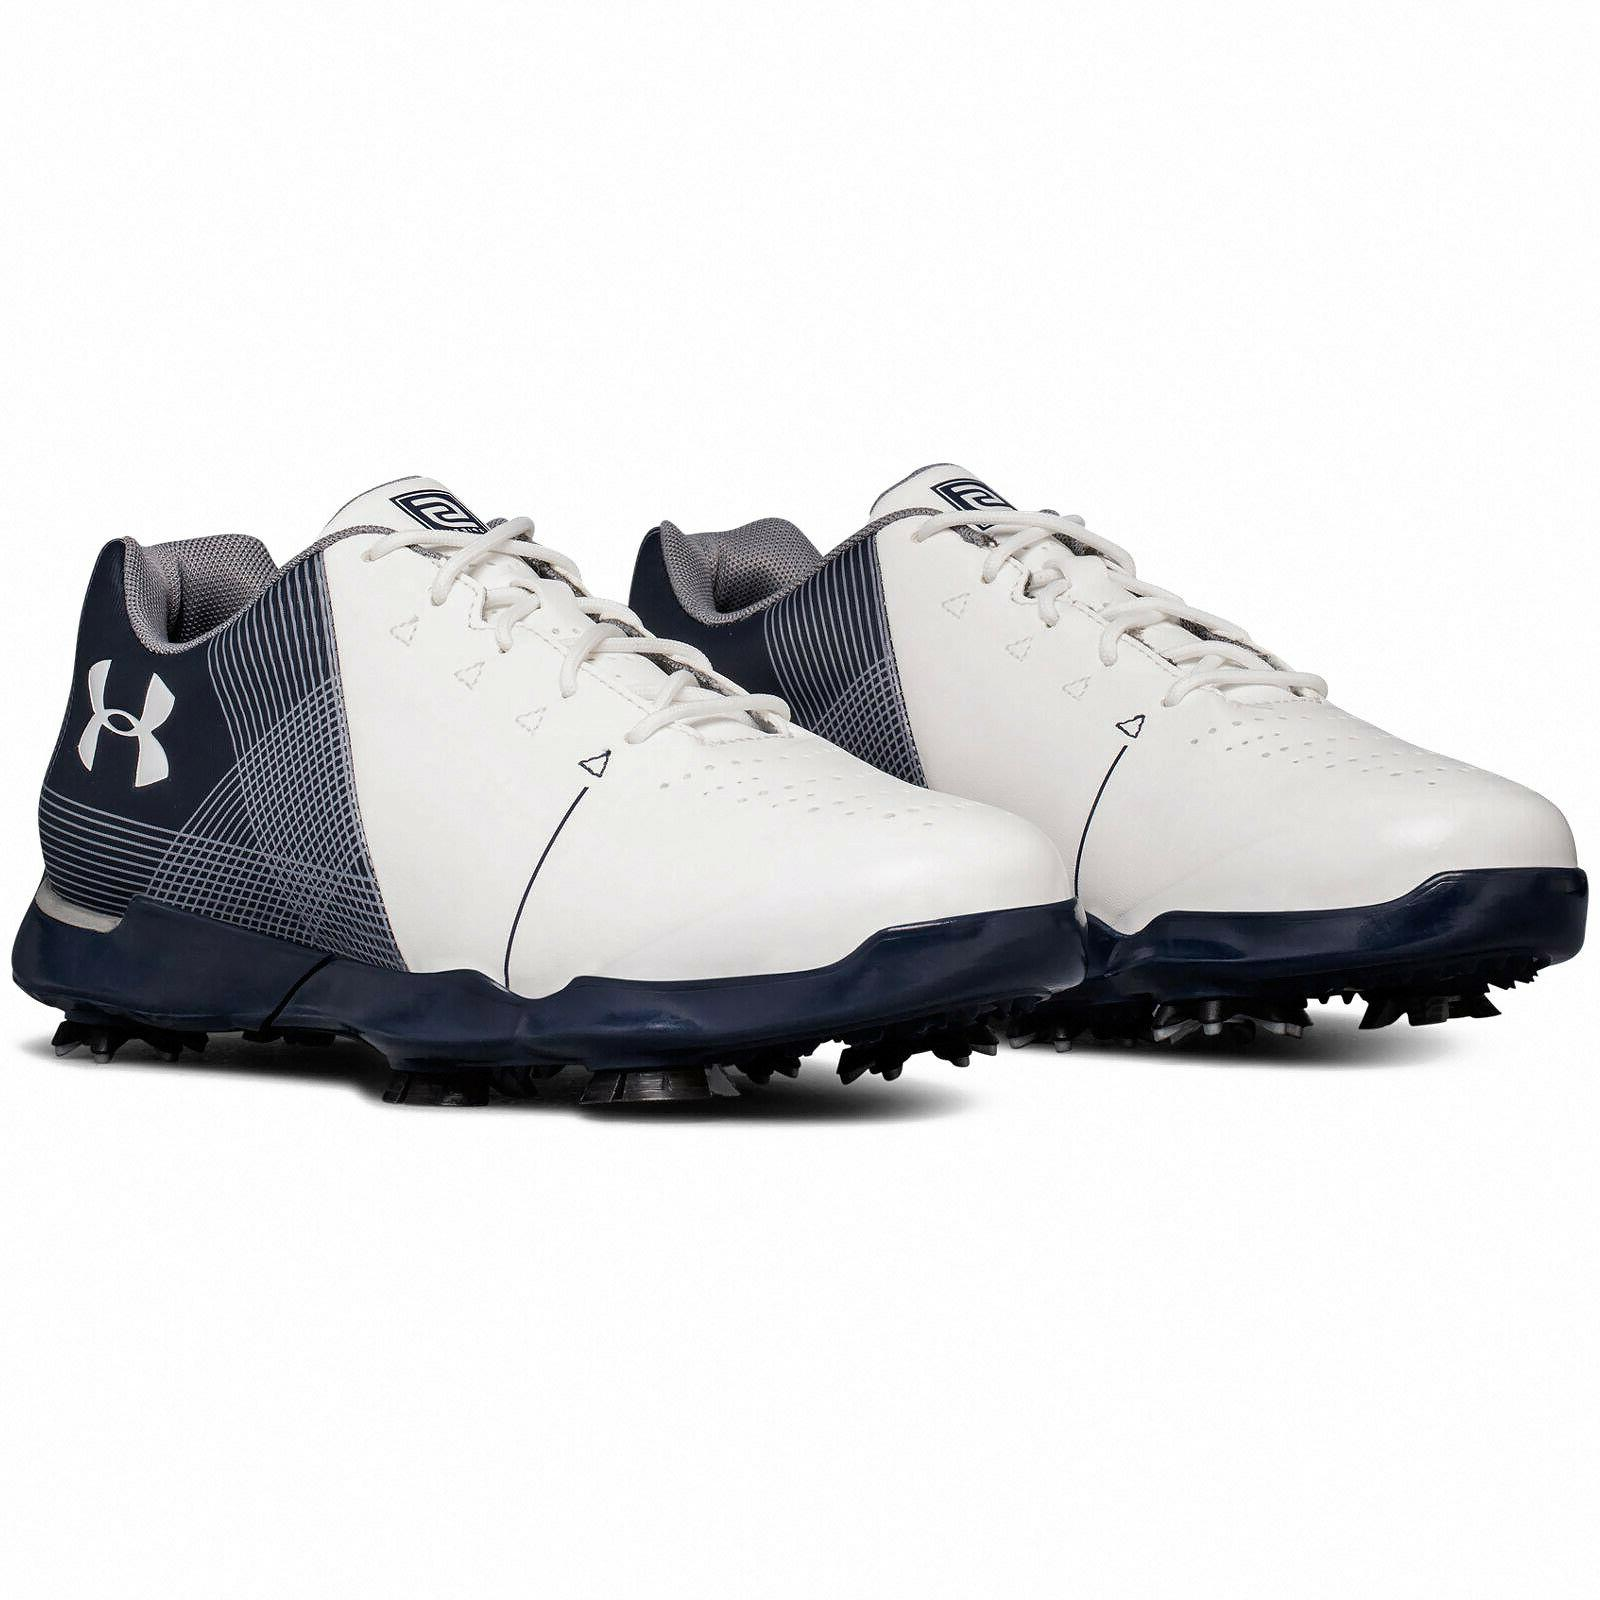 2 JR Youth Golf Shoes Pick